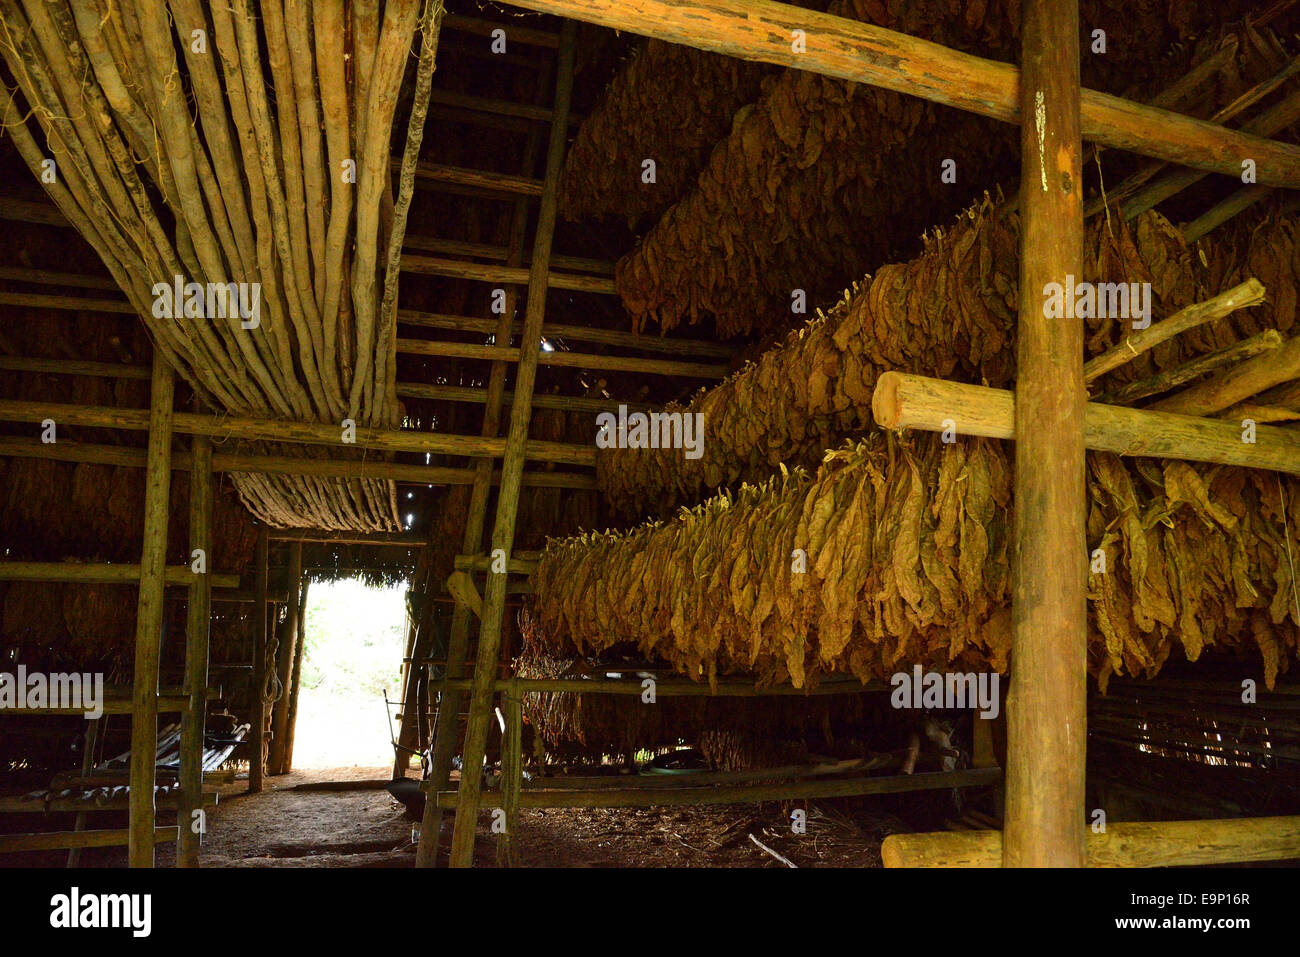 Tobacco drying or curing barn - Stock Image